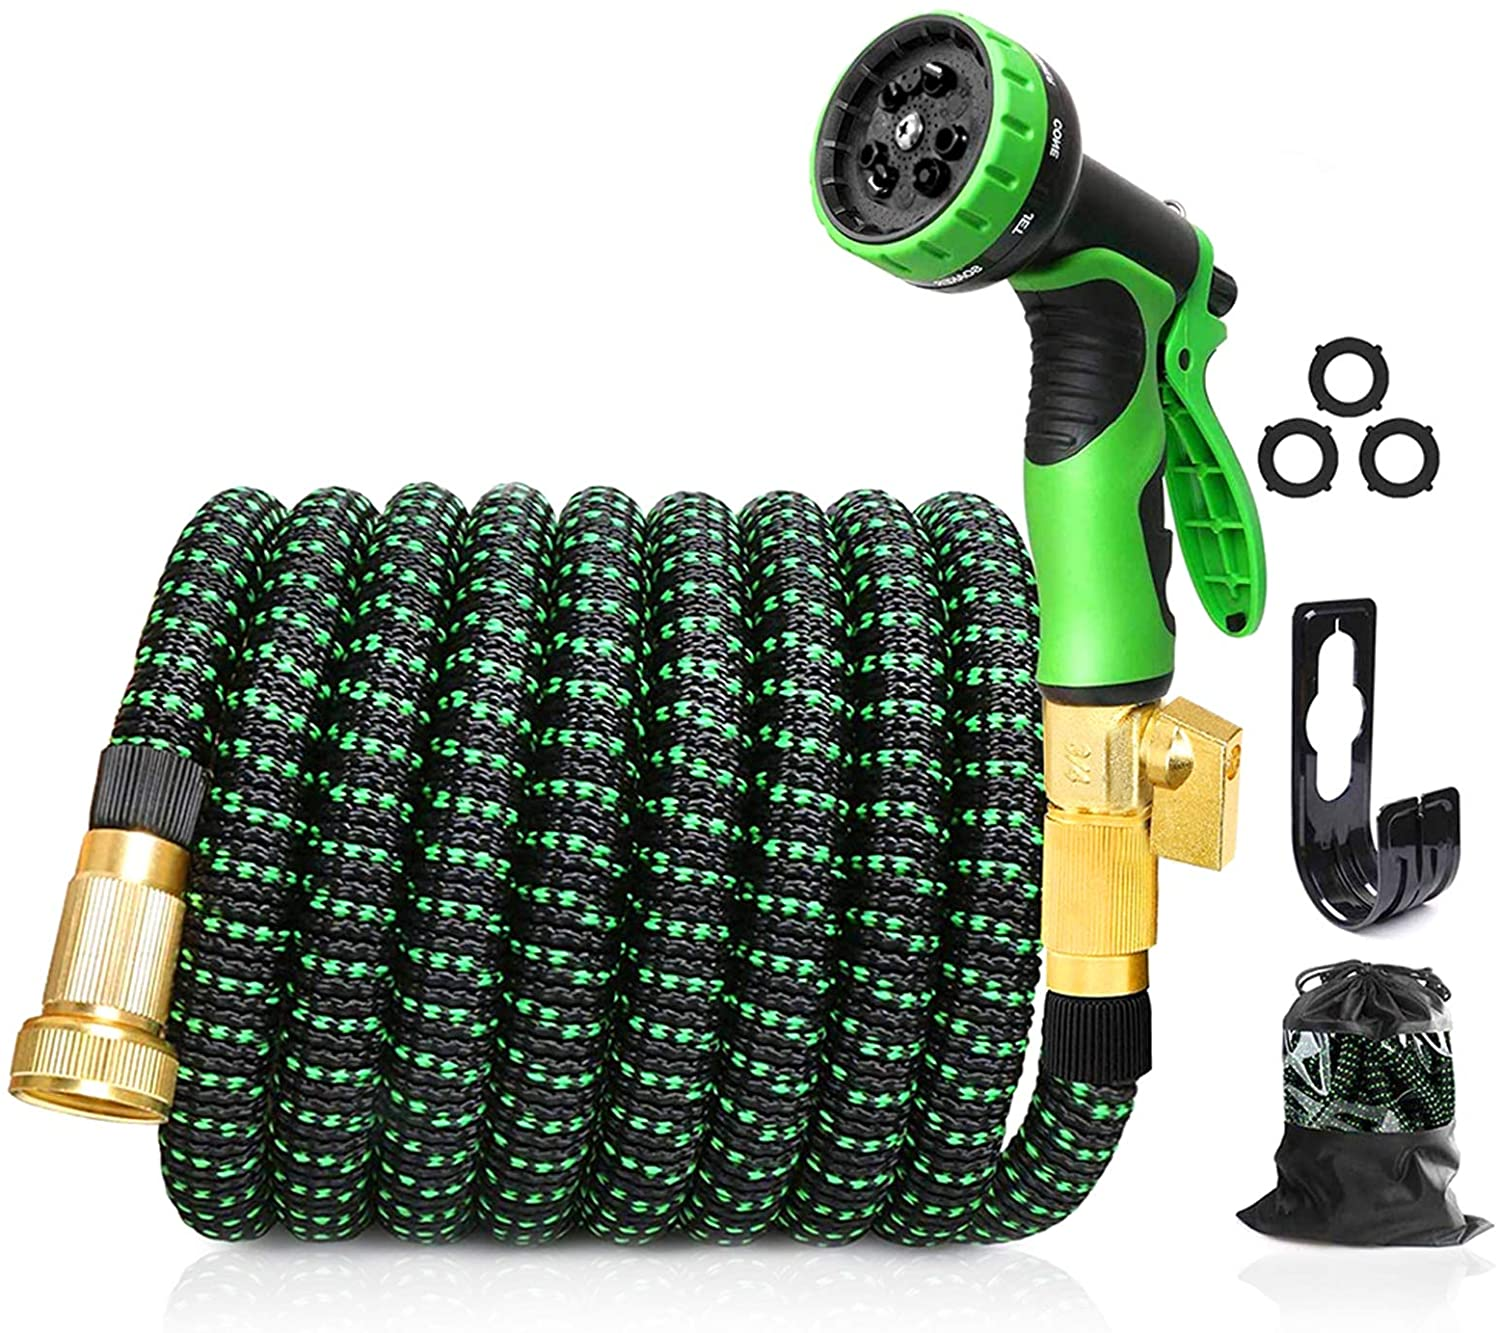 Upgraded Expandable Garden Hose, 100 FT, 3/4